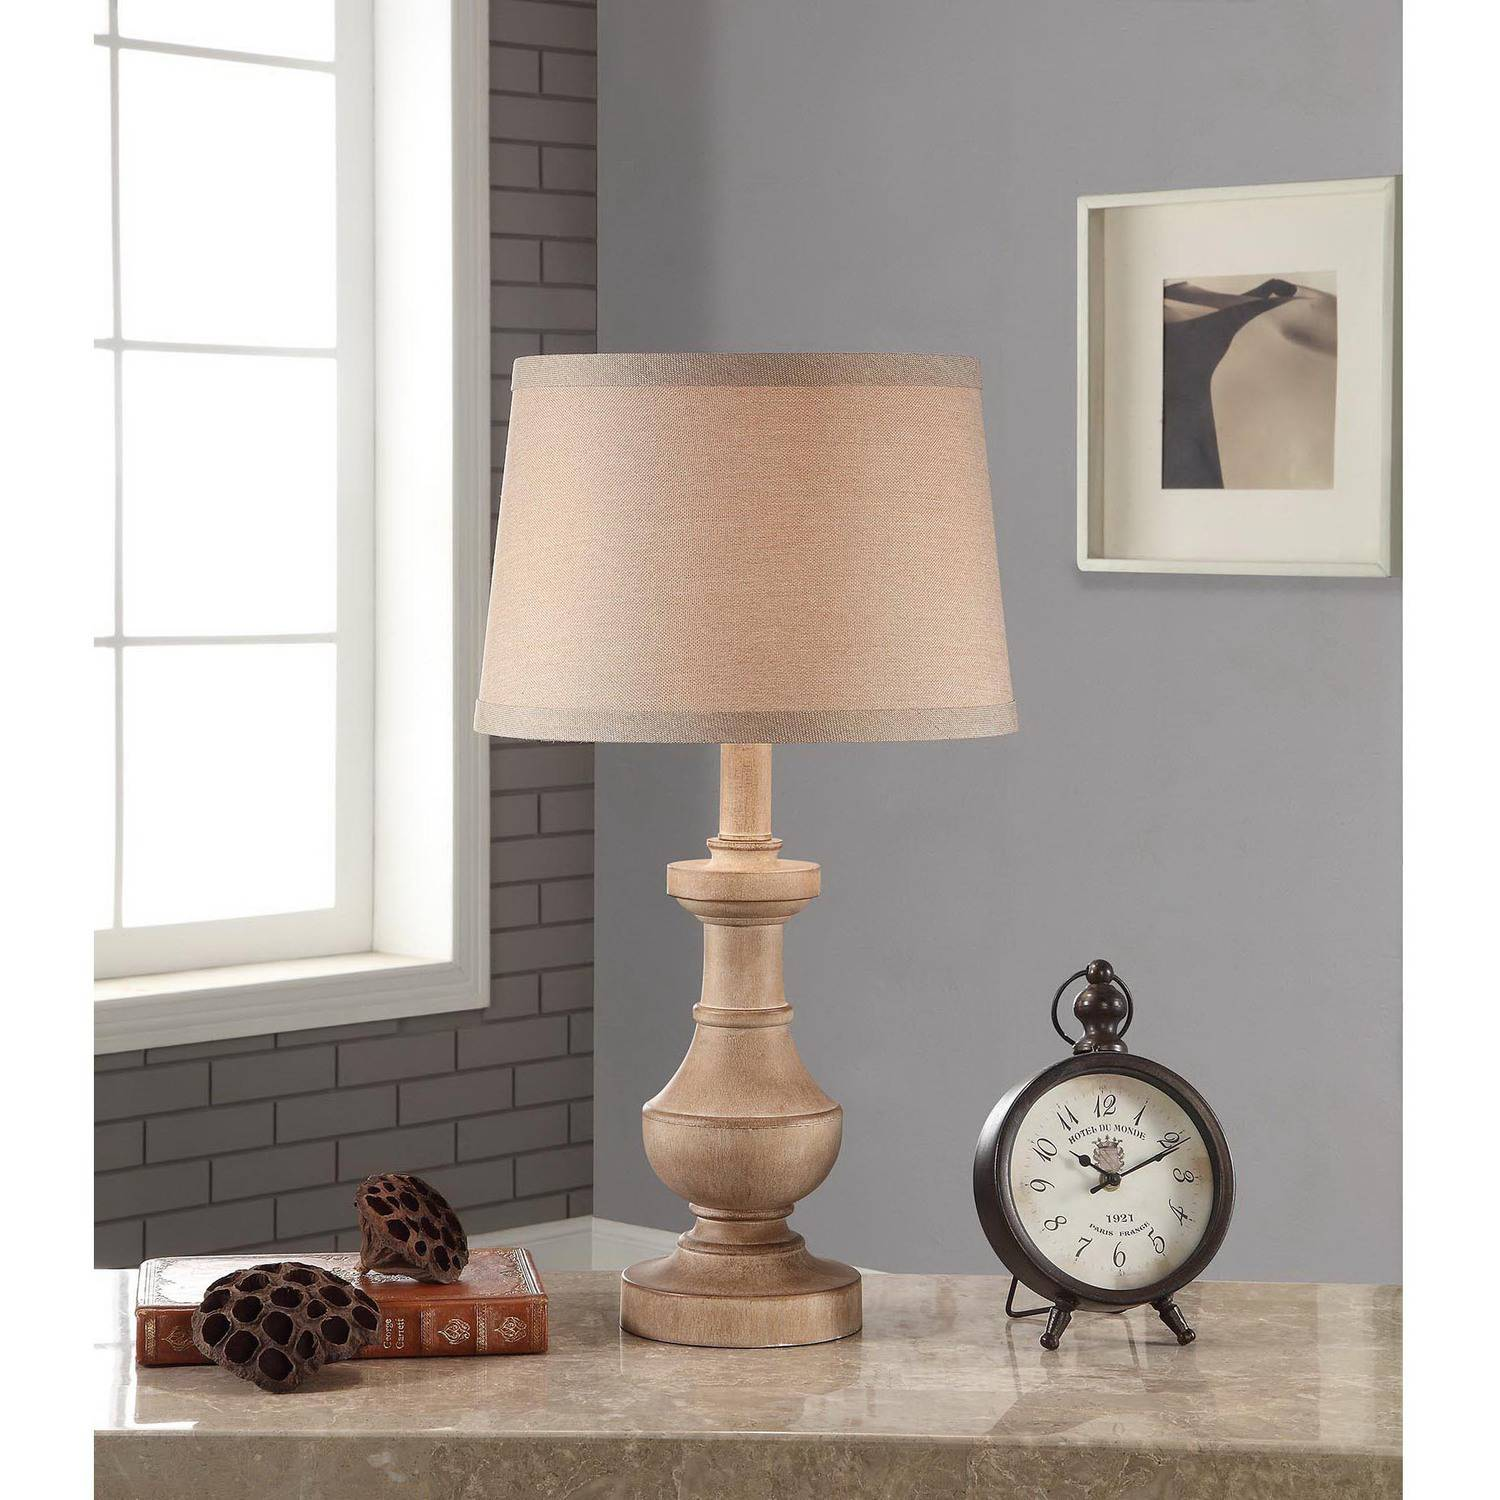 Better Homes And Gardens Rustic Table Lamp, White Washed Wood Finish